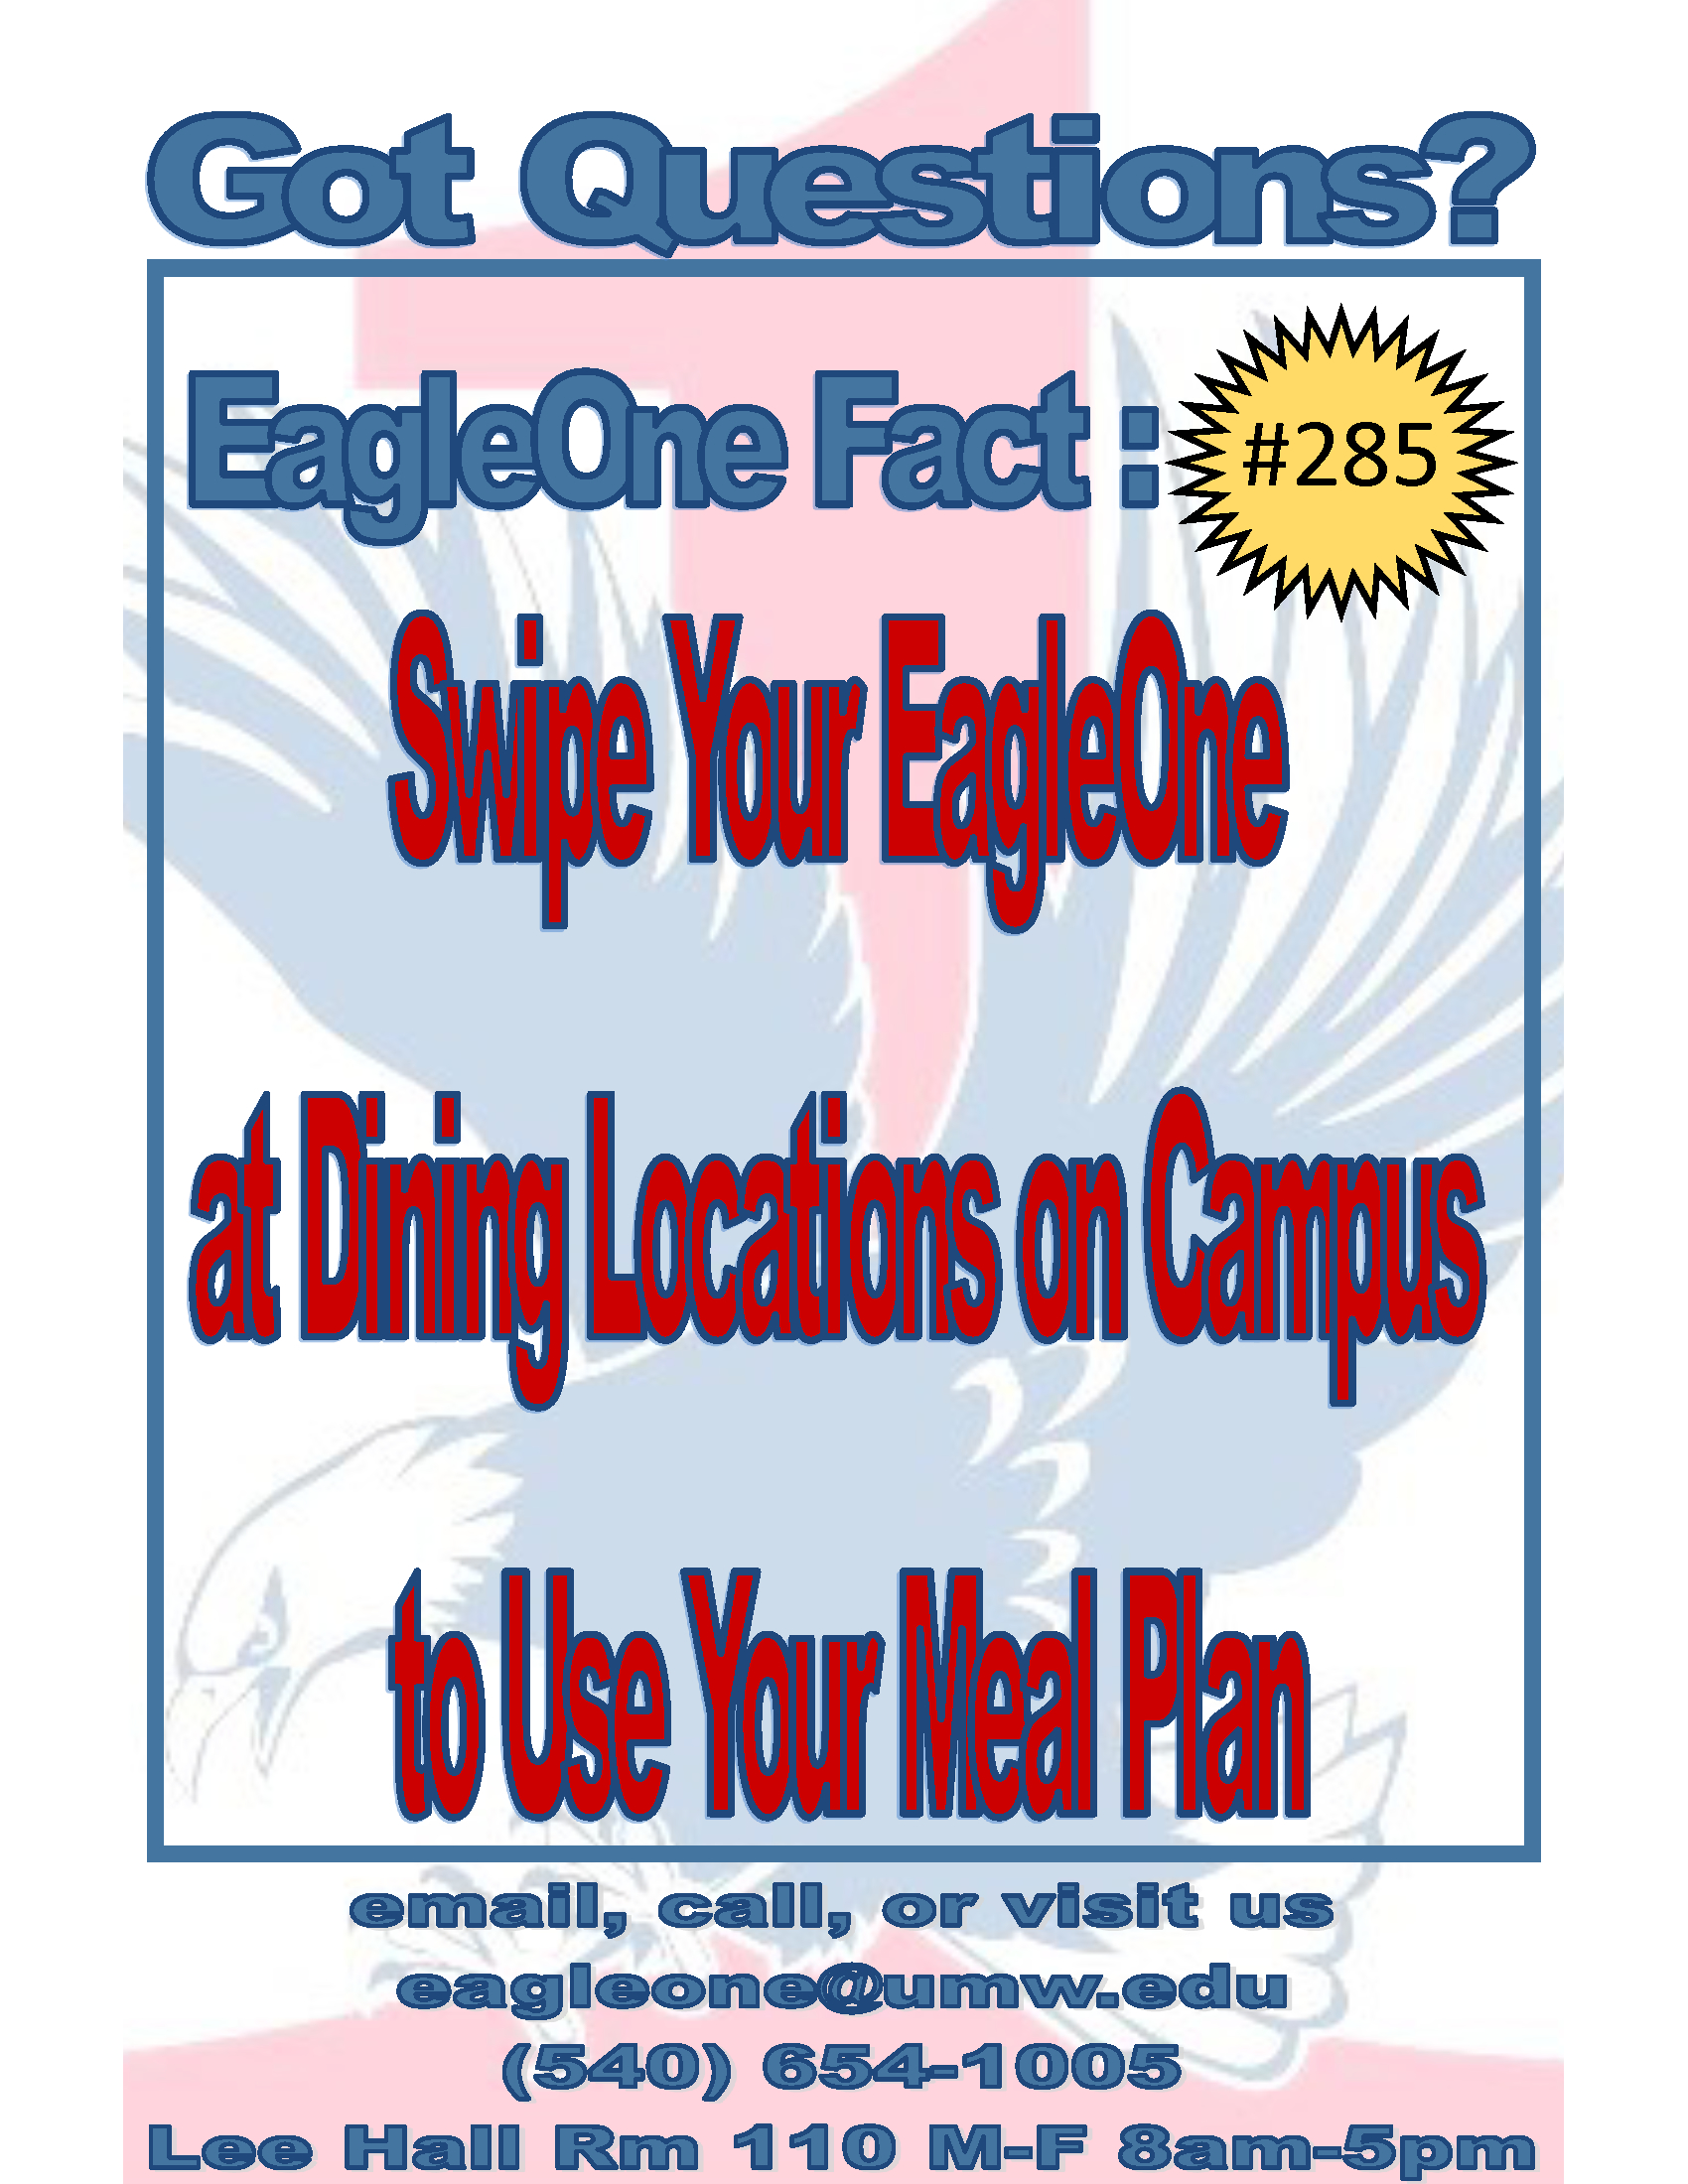 Information regarding EagleOne Fact # 285 is as follows Start date is June 13 2018 and End Date is June 27 2018 and File is Browse and Affiliation is Department and Group Name is EagleOne Card Center and Name of Ad/Event is EagleOne Fact # 285 and File Name is eofct285_comp.jpg and Name is Maie Makin and Email is mmakin2@umw.edu and Panel is Side and